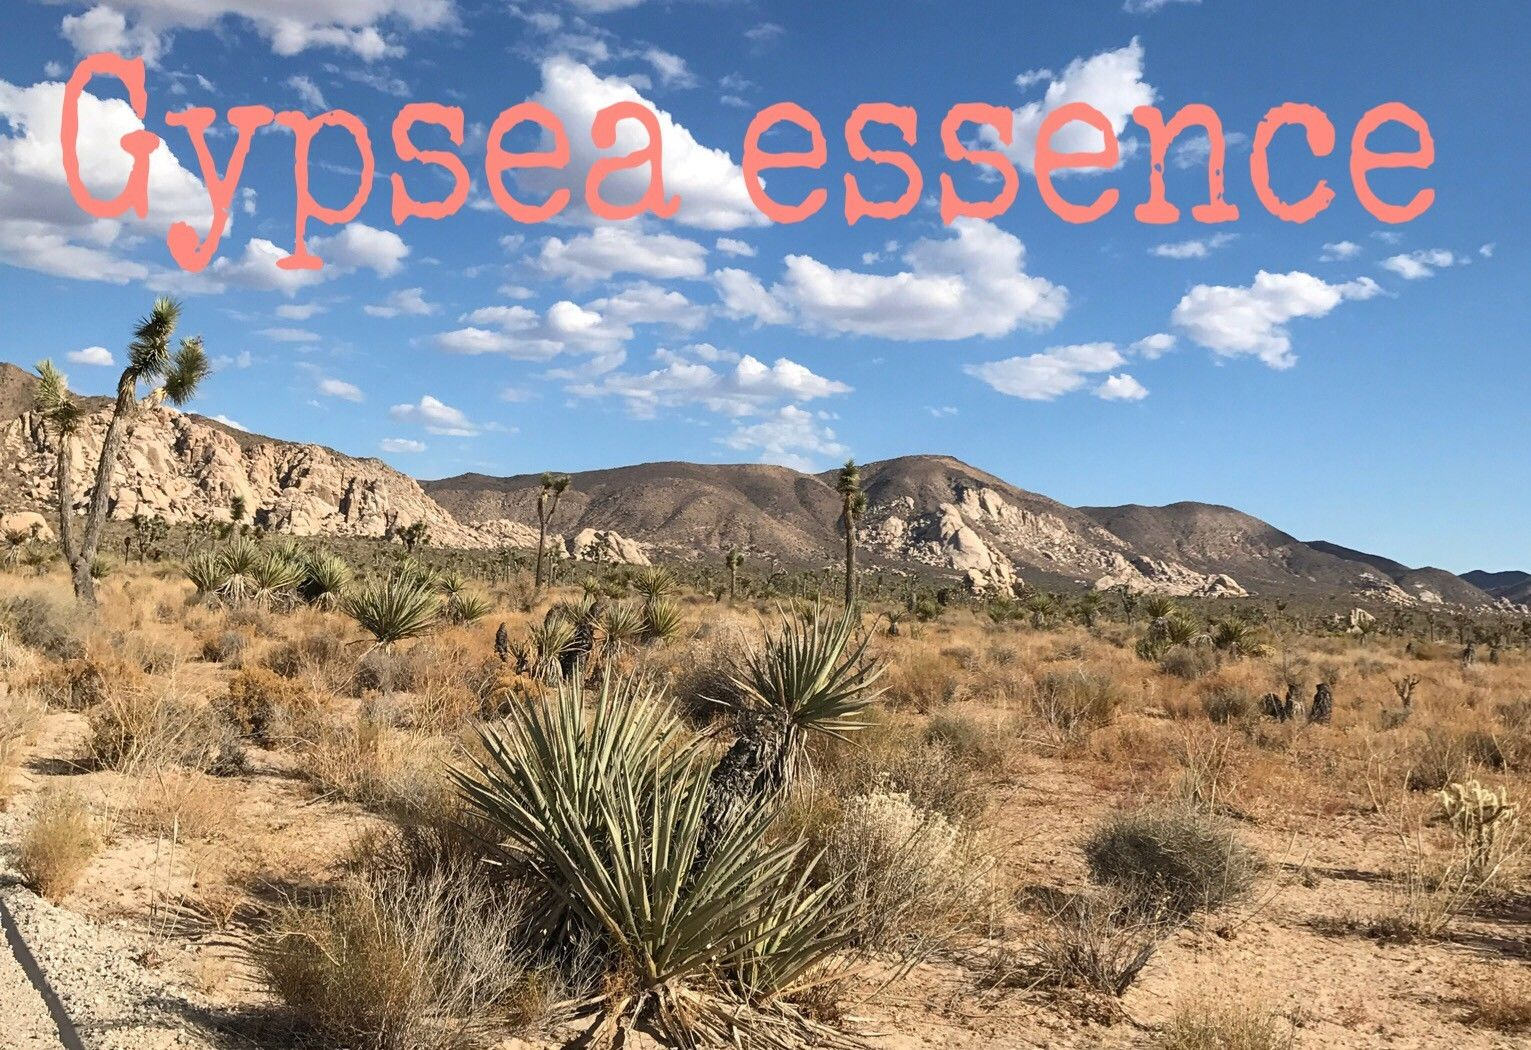 wild gypsea essence